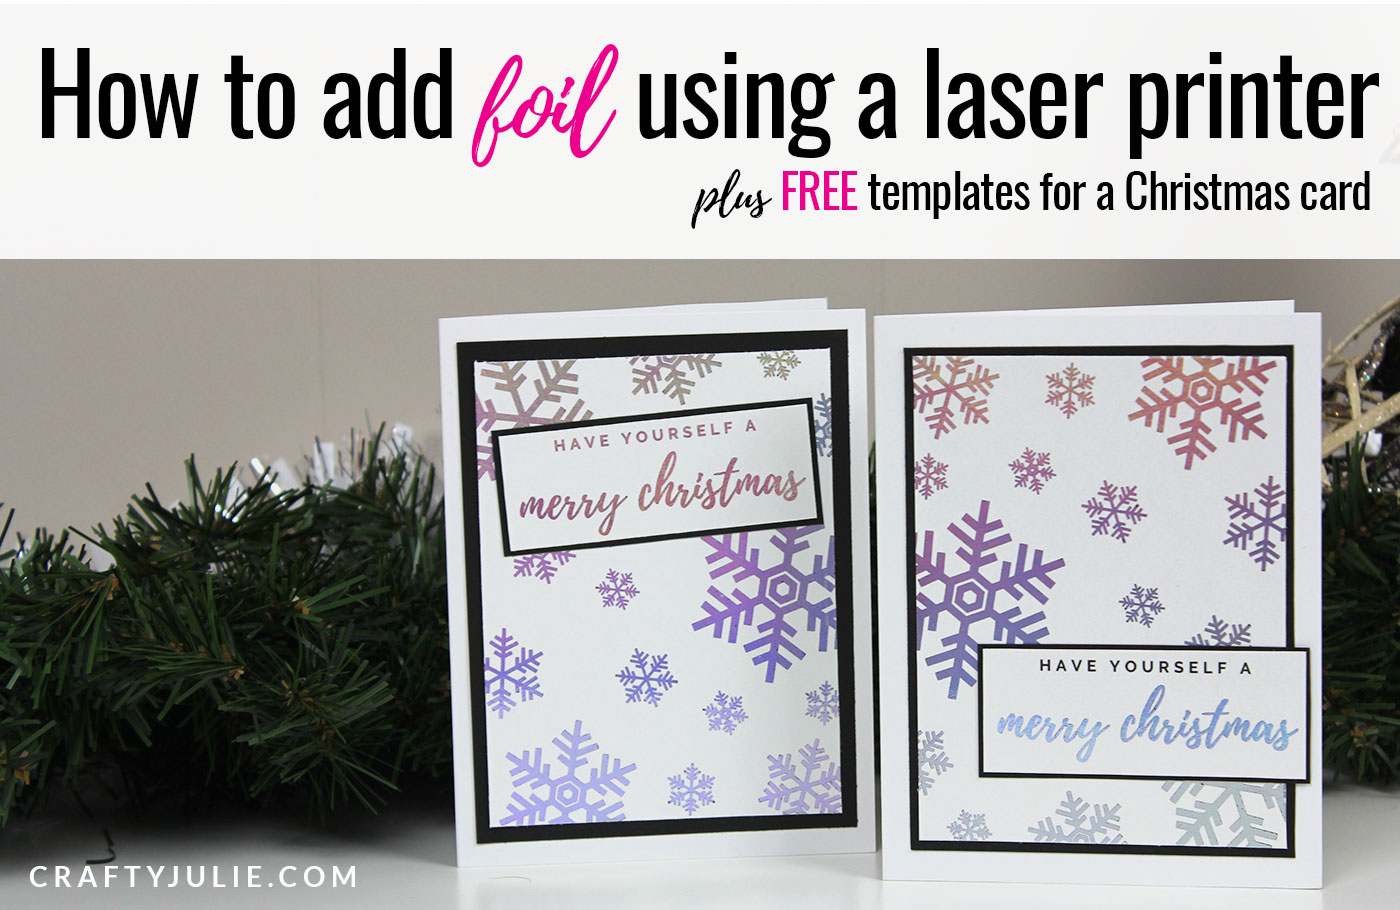 How to add foil to your projects using a laser printer | CraftyJulie